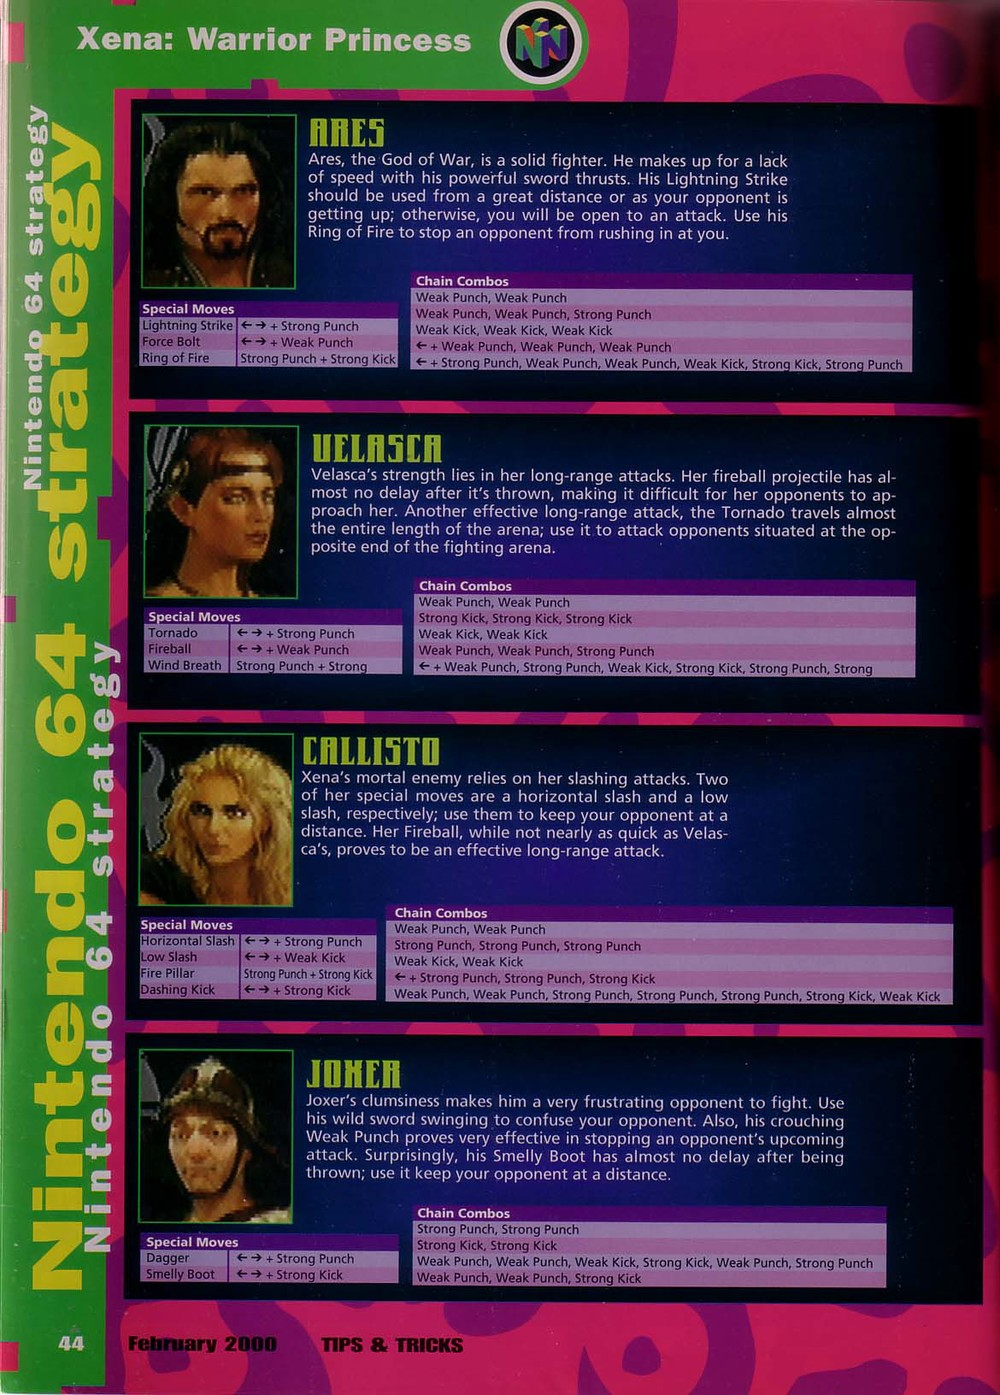 TipsandTricks_Feb_2000_Xena_pg3_strategy.jpg